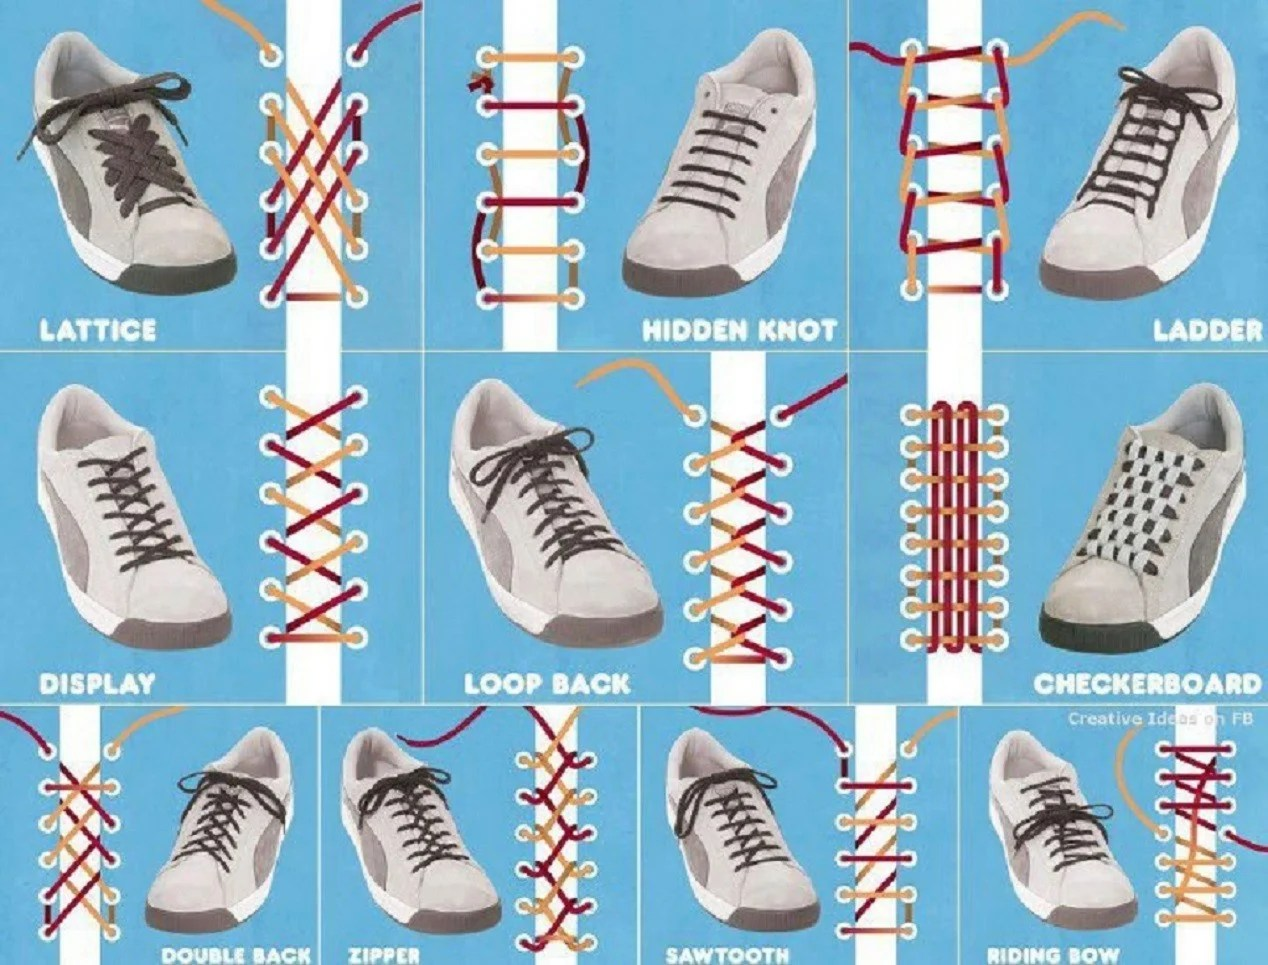 10 Ways to Lace Up Your Shoes Creatively